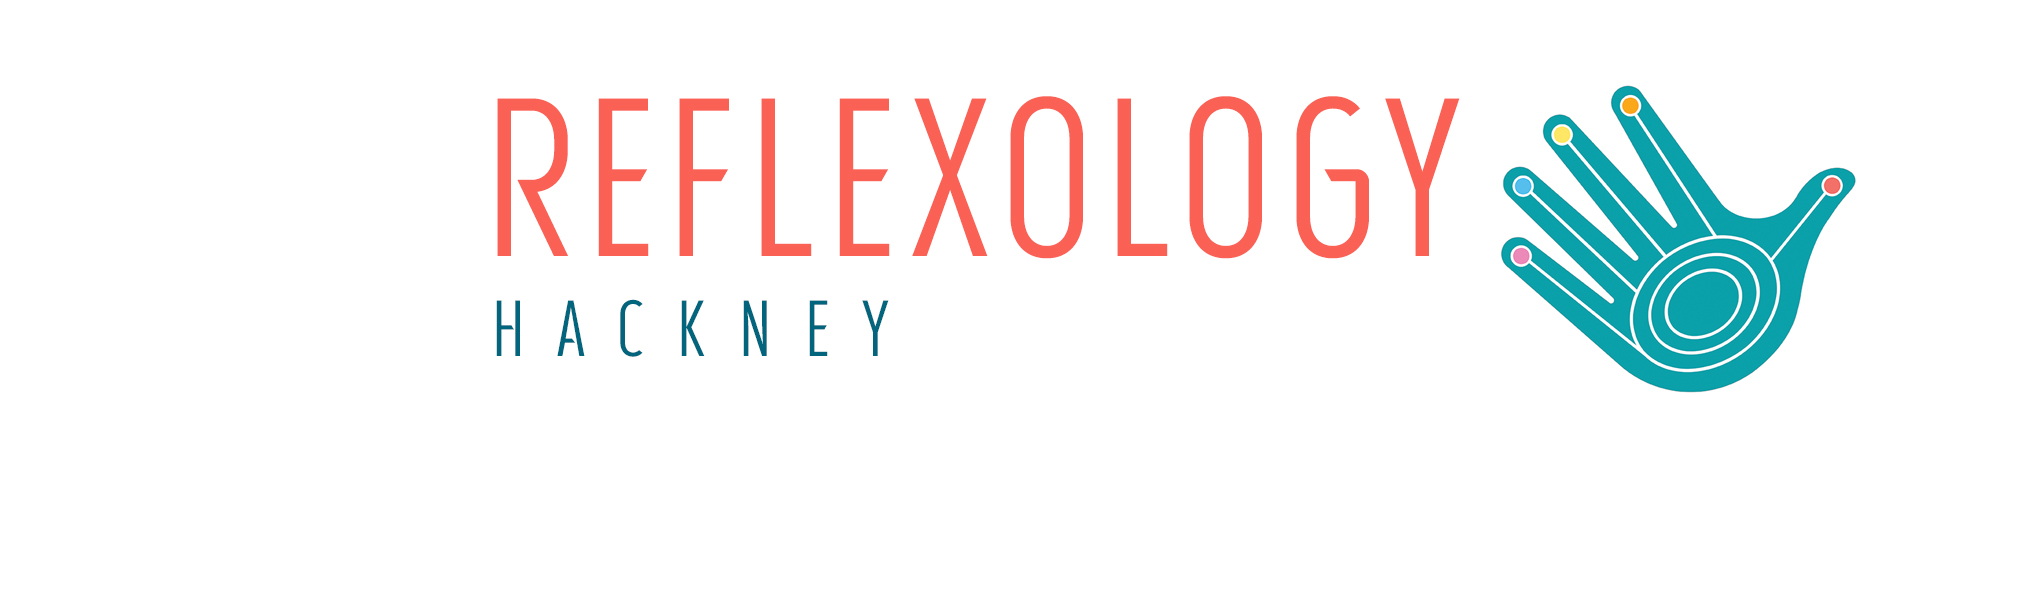 refexology-website